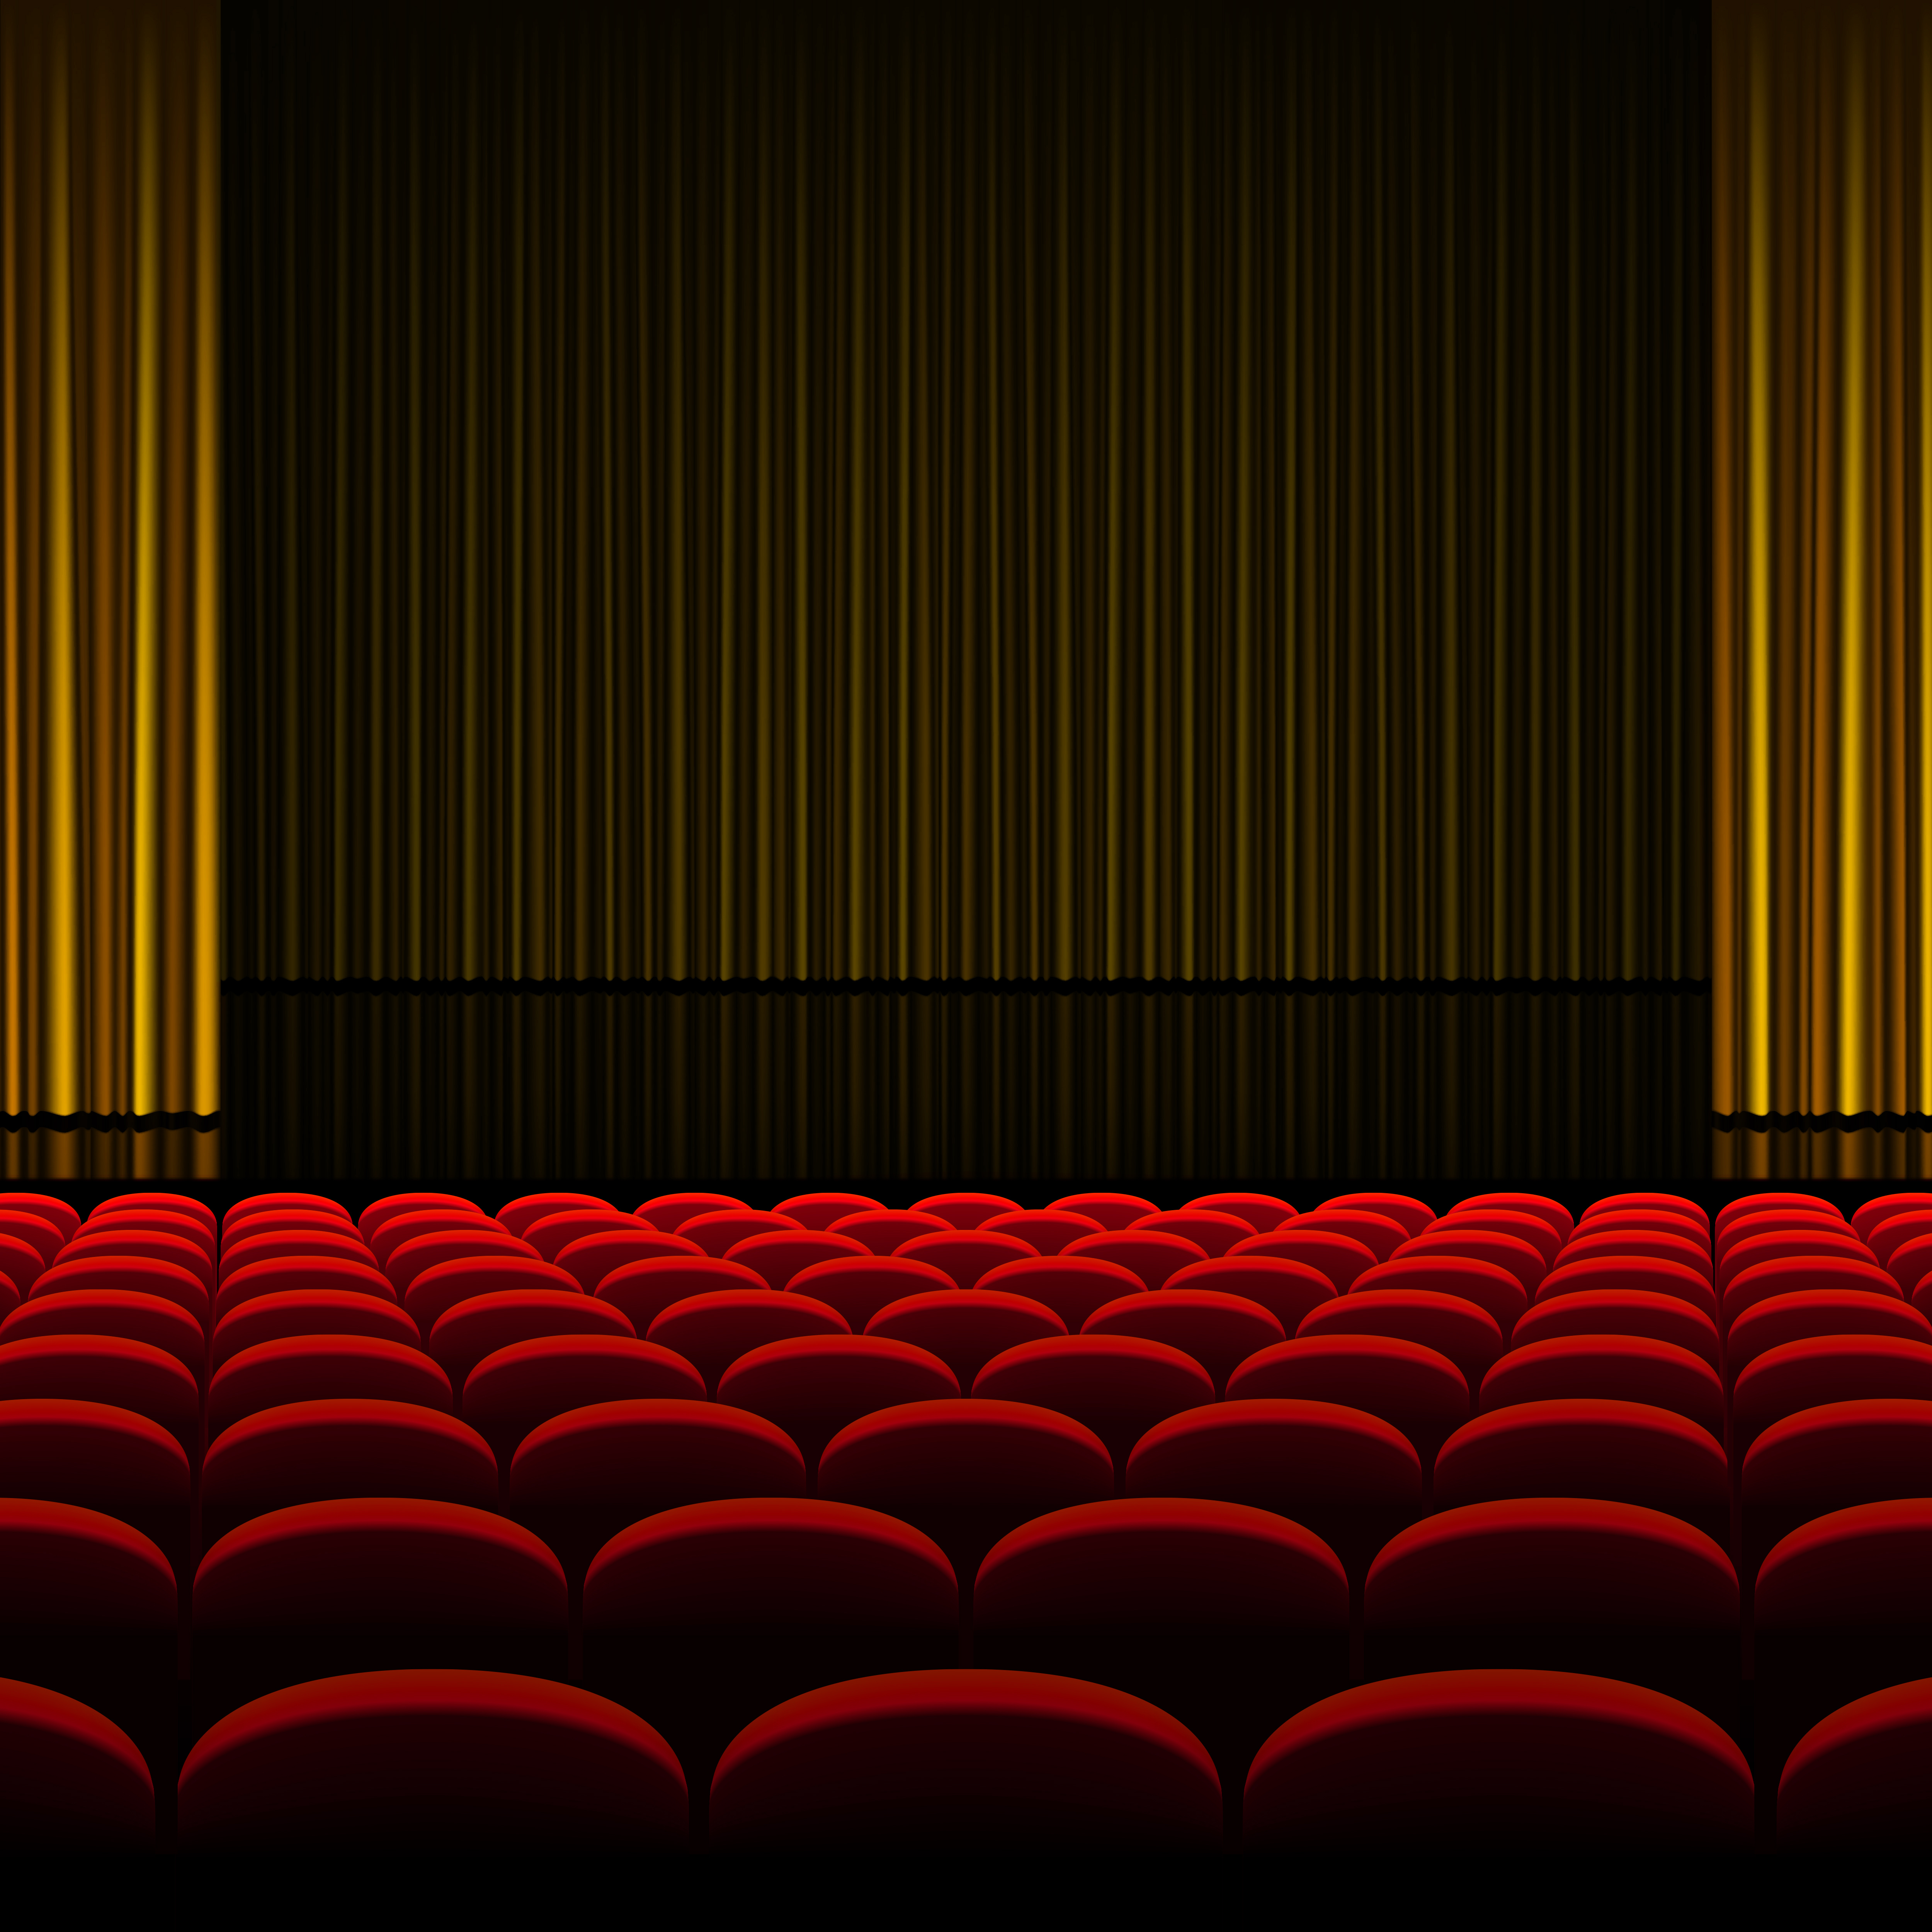 Black Cat Wallpaper Theater Background Gallery Yopriceville High Quality